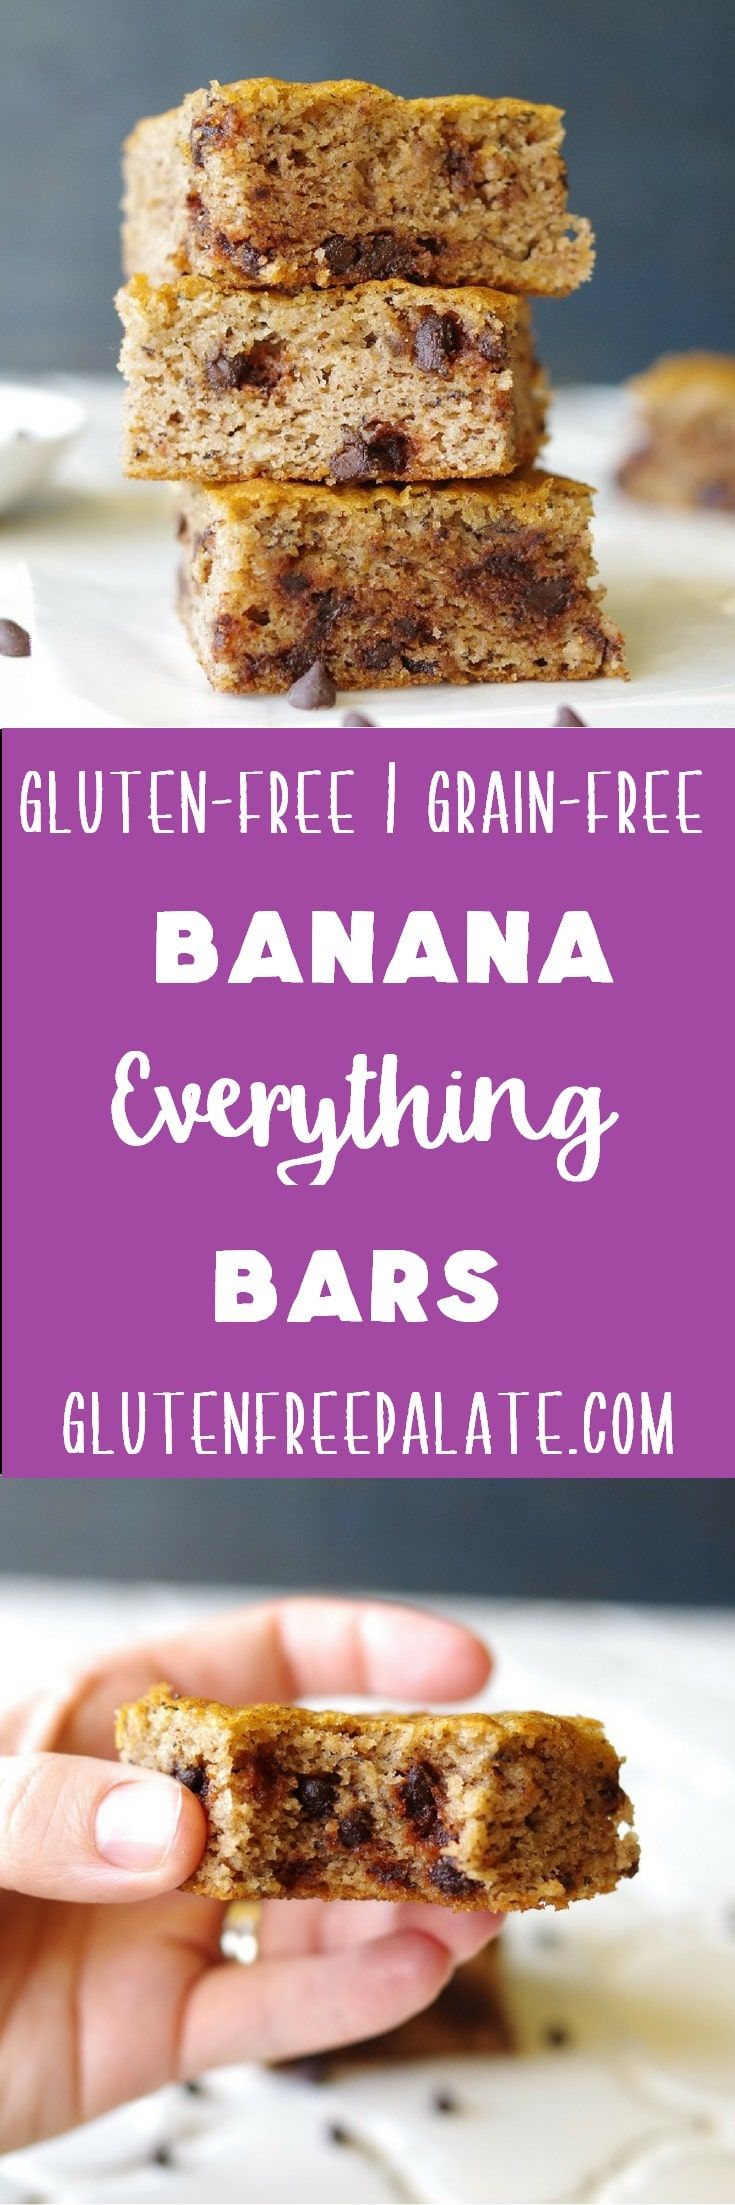 Gluten-Free, Grain-Free Banana Everything Bars are my go-to recipe when I only have one banana left. They are healthy, easy to make, and taste amazing fresh out of the oven. via @gfpalate